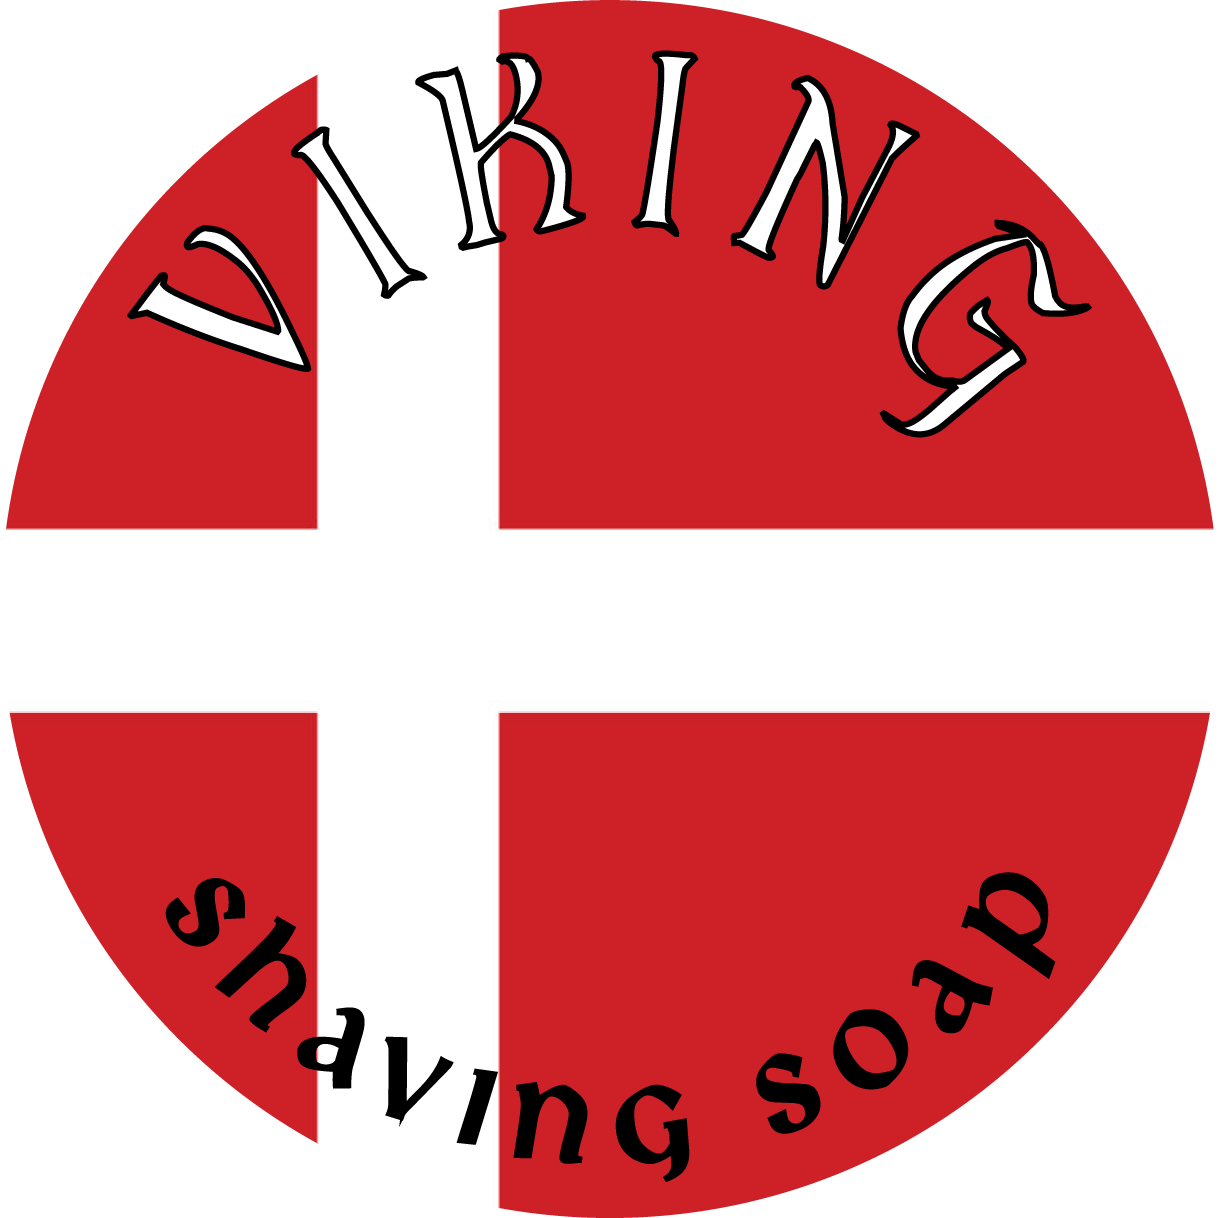 Viking Shaving Soap - Denmark - Soap image